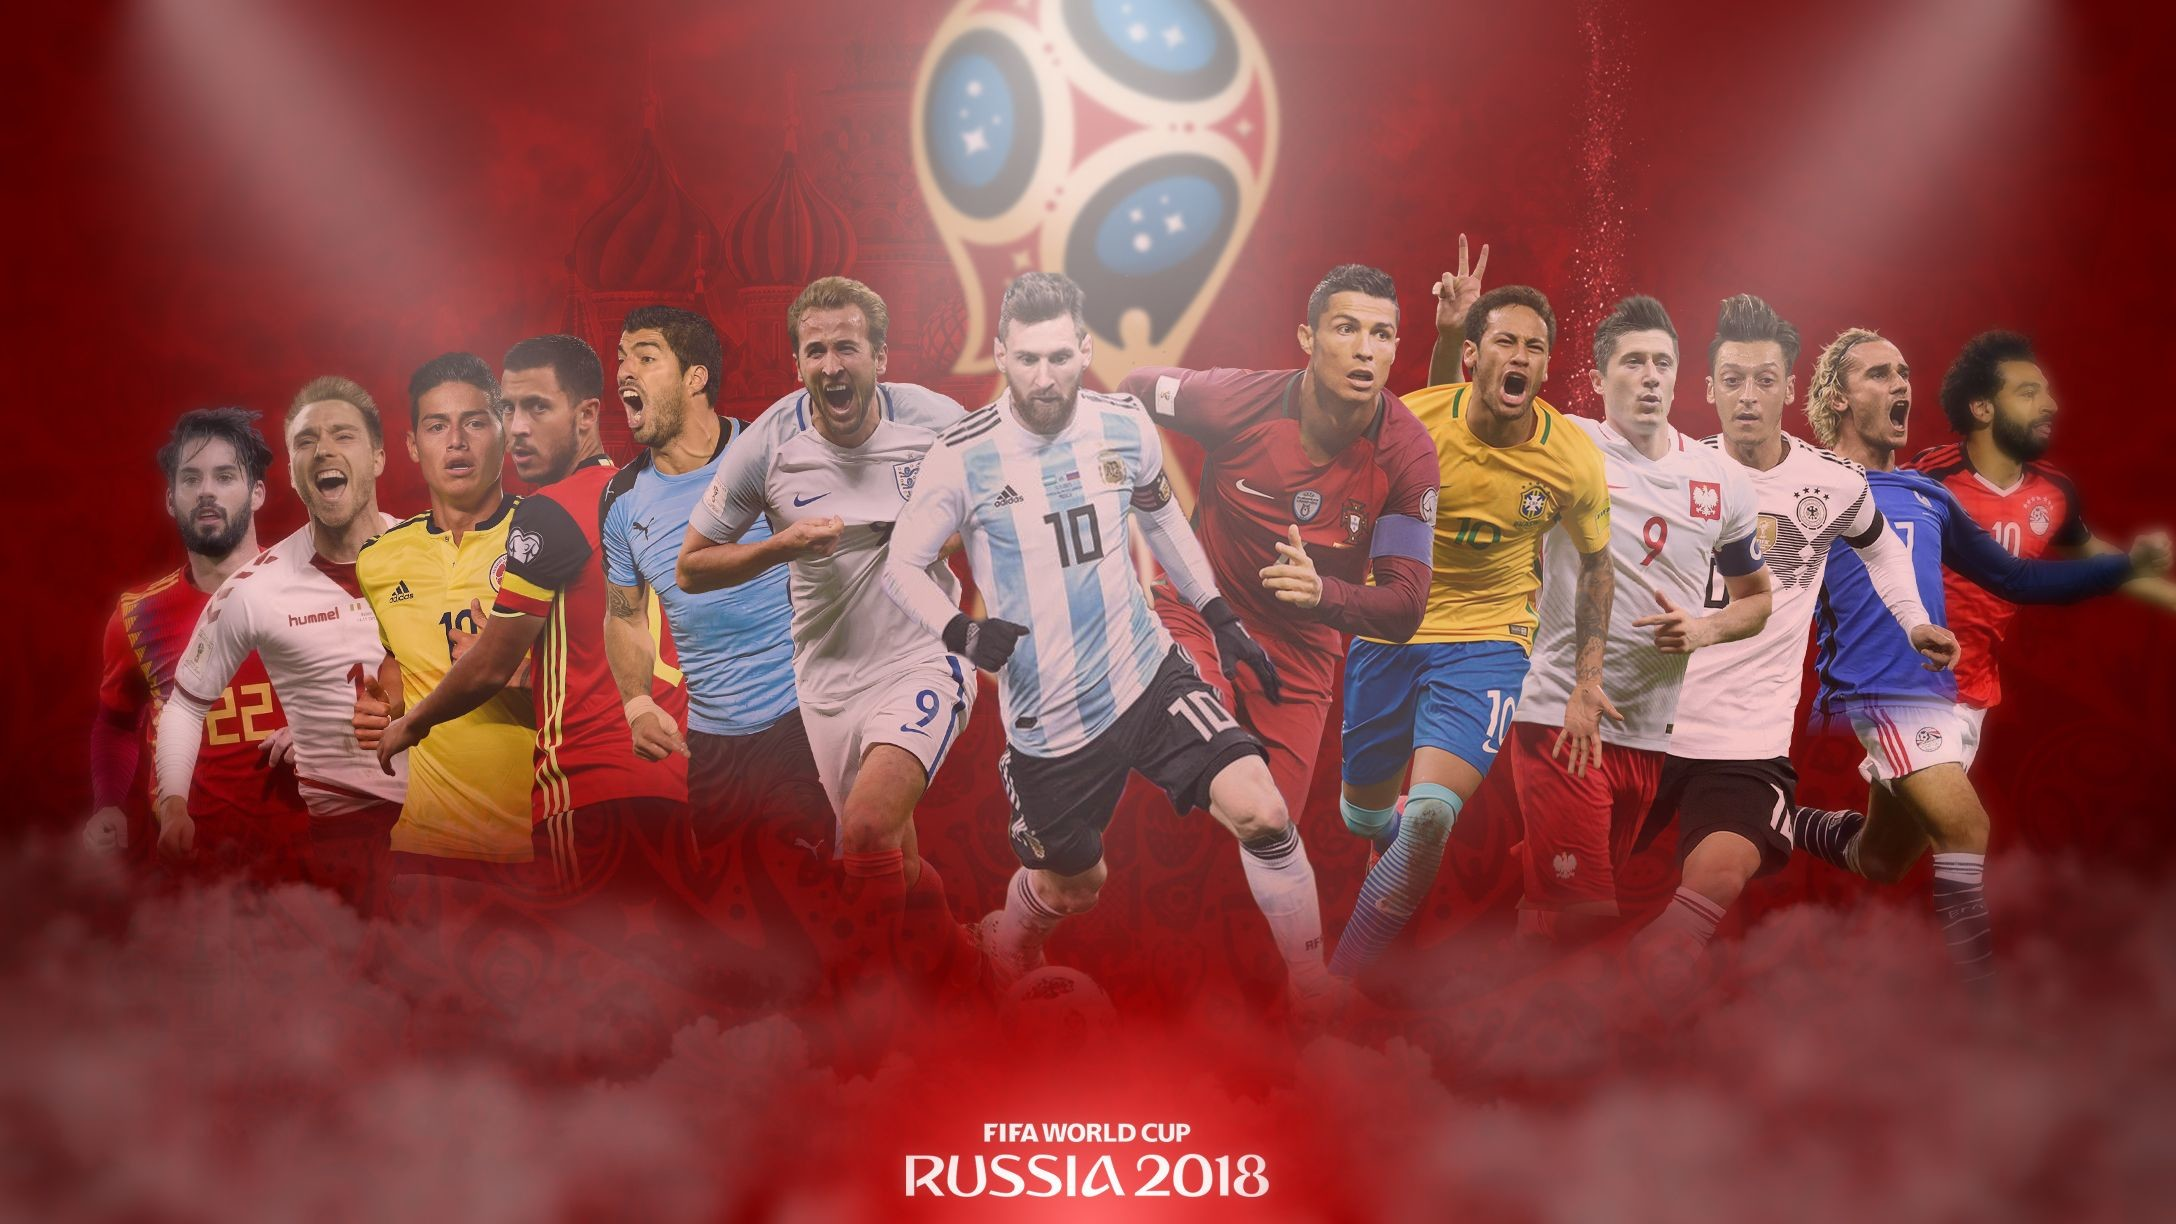 Res: 2176x1224, 2018 FIFA World Cup Soccer Football Players